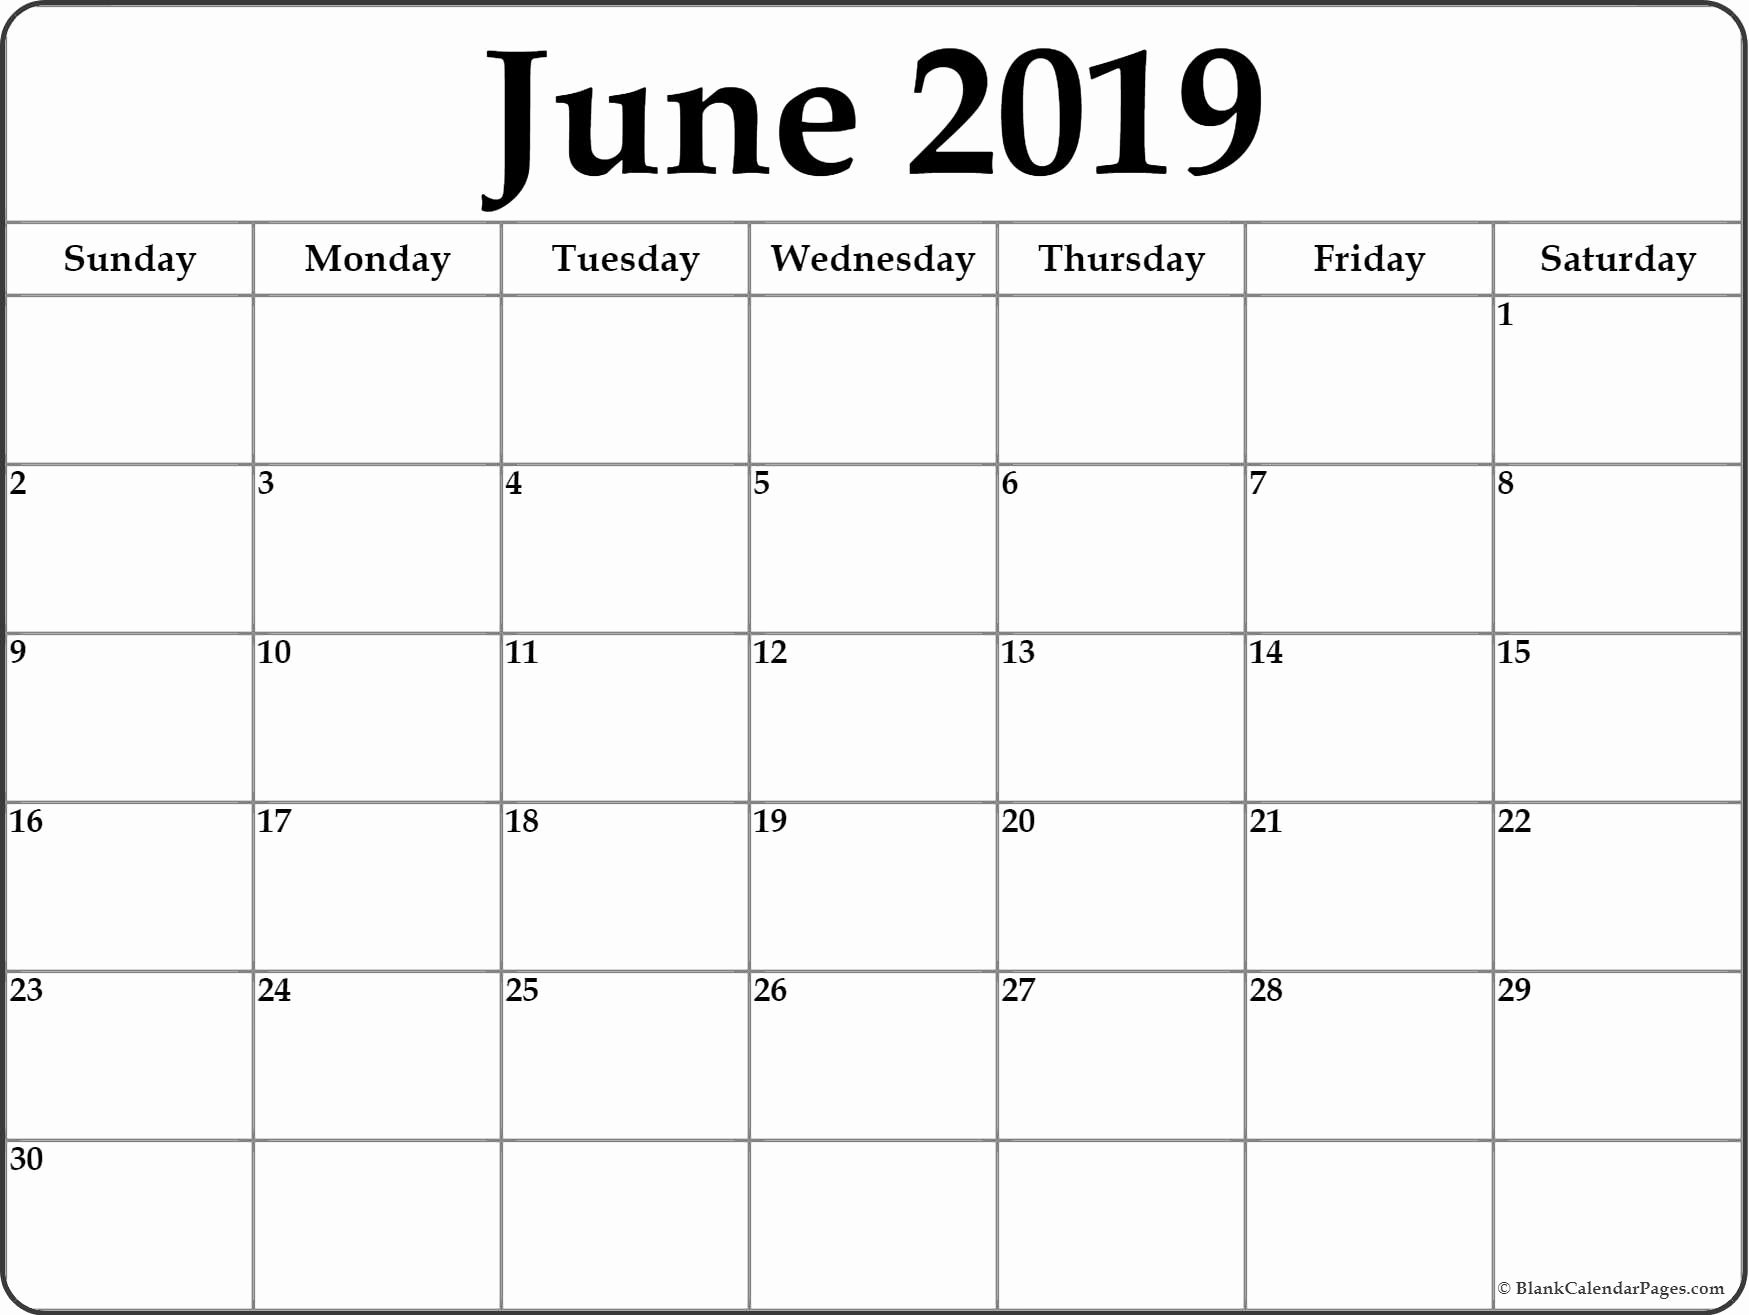 Monthly Calendar Template 2019 Awesome June 2019 Blank Calendar Templates